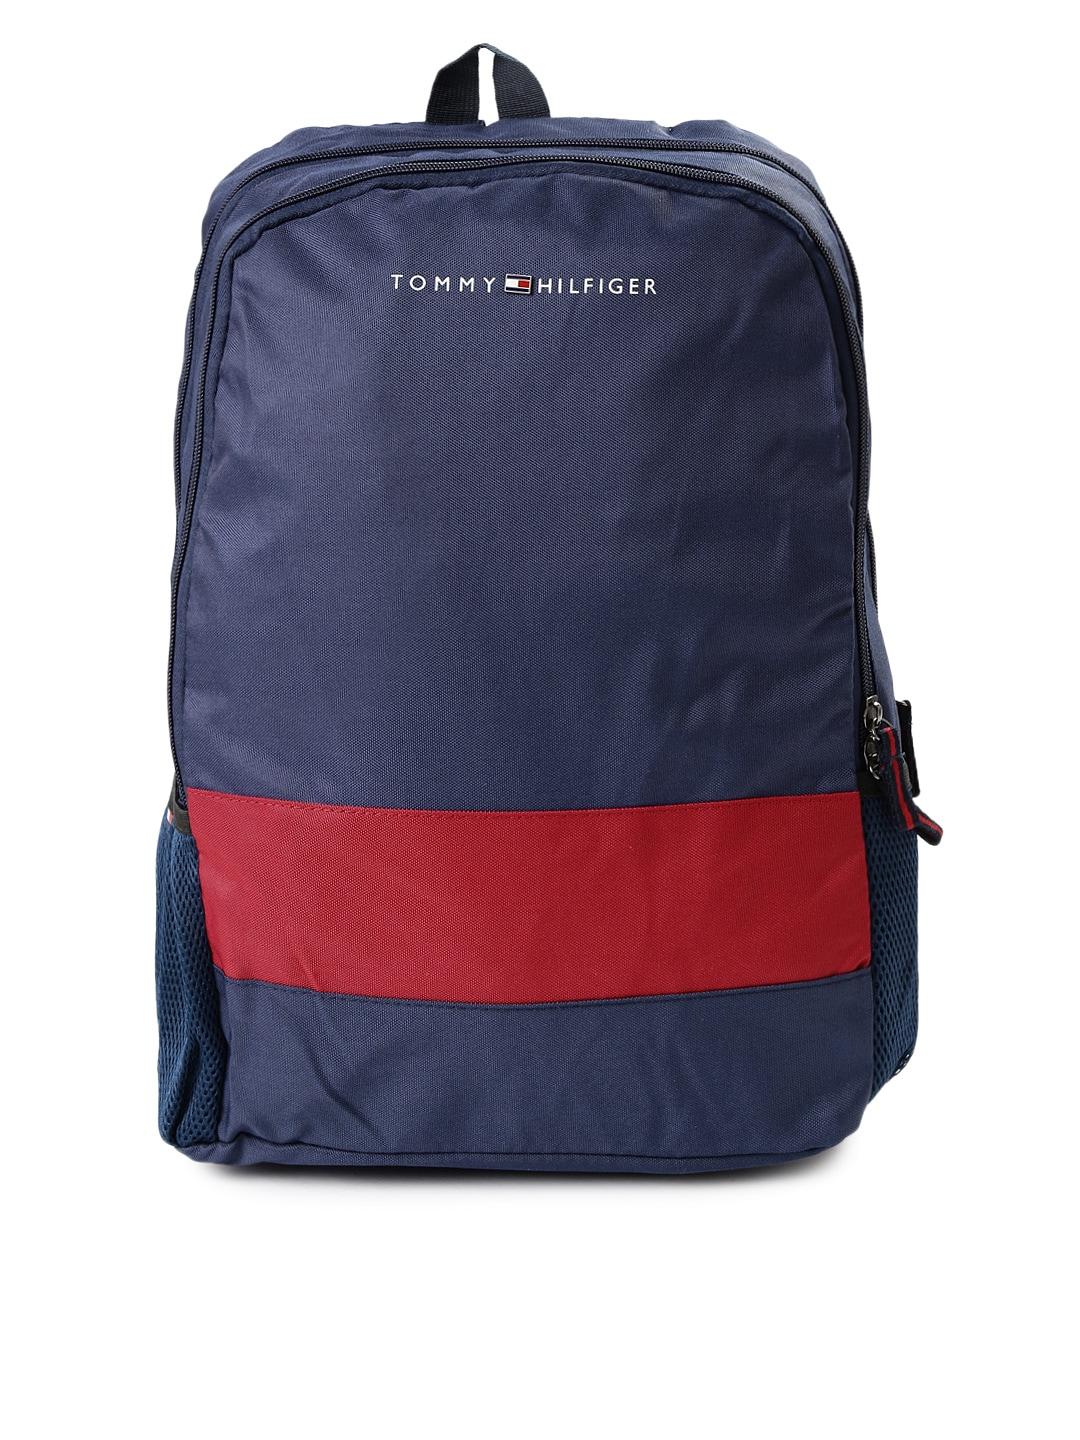 e1041856119f Tommy Hilfiger Backpacks - Buy Tommy Hilfiger Backpacks online in India